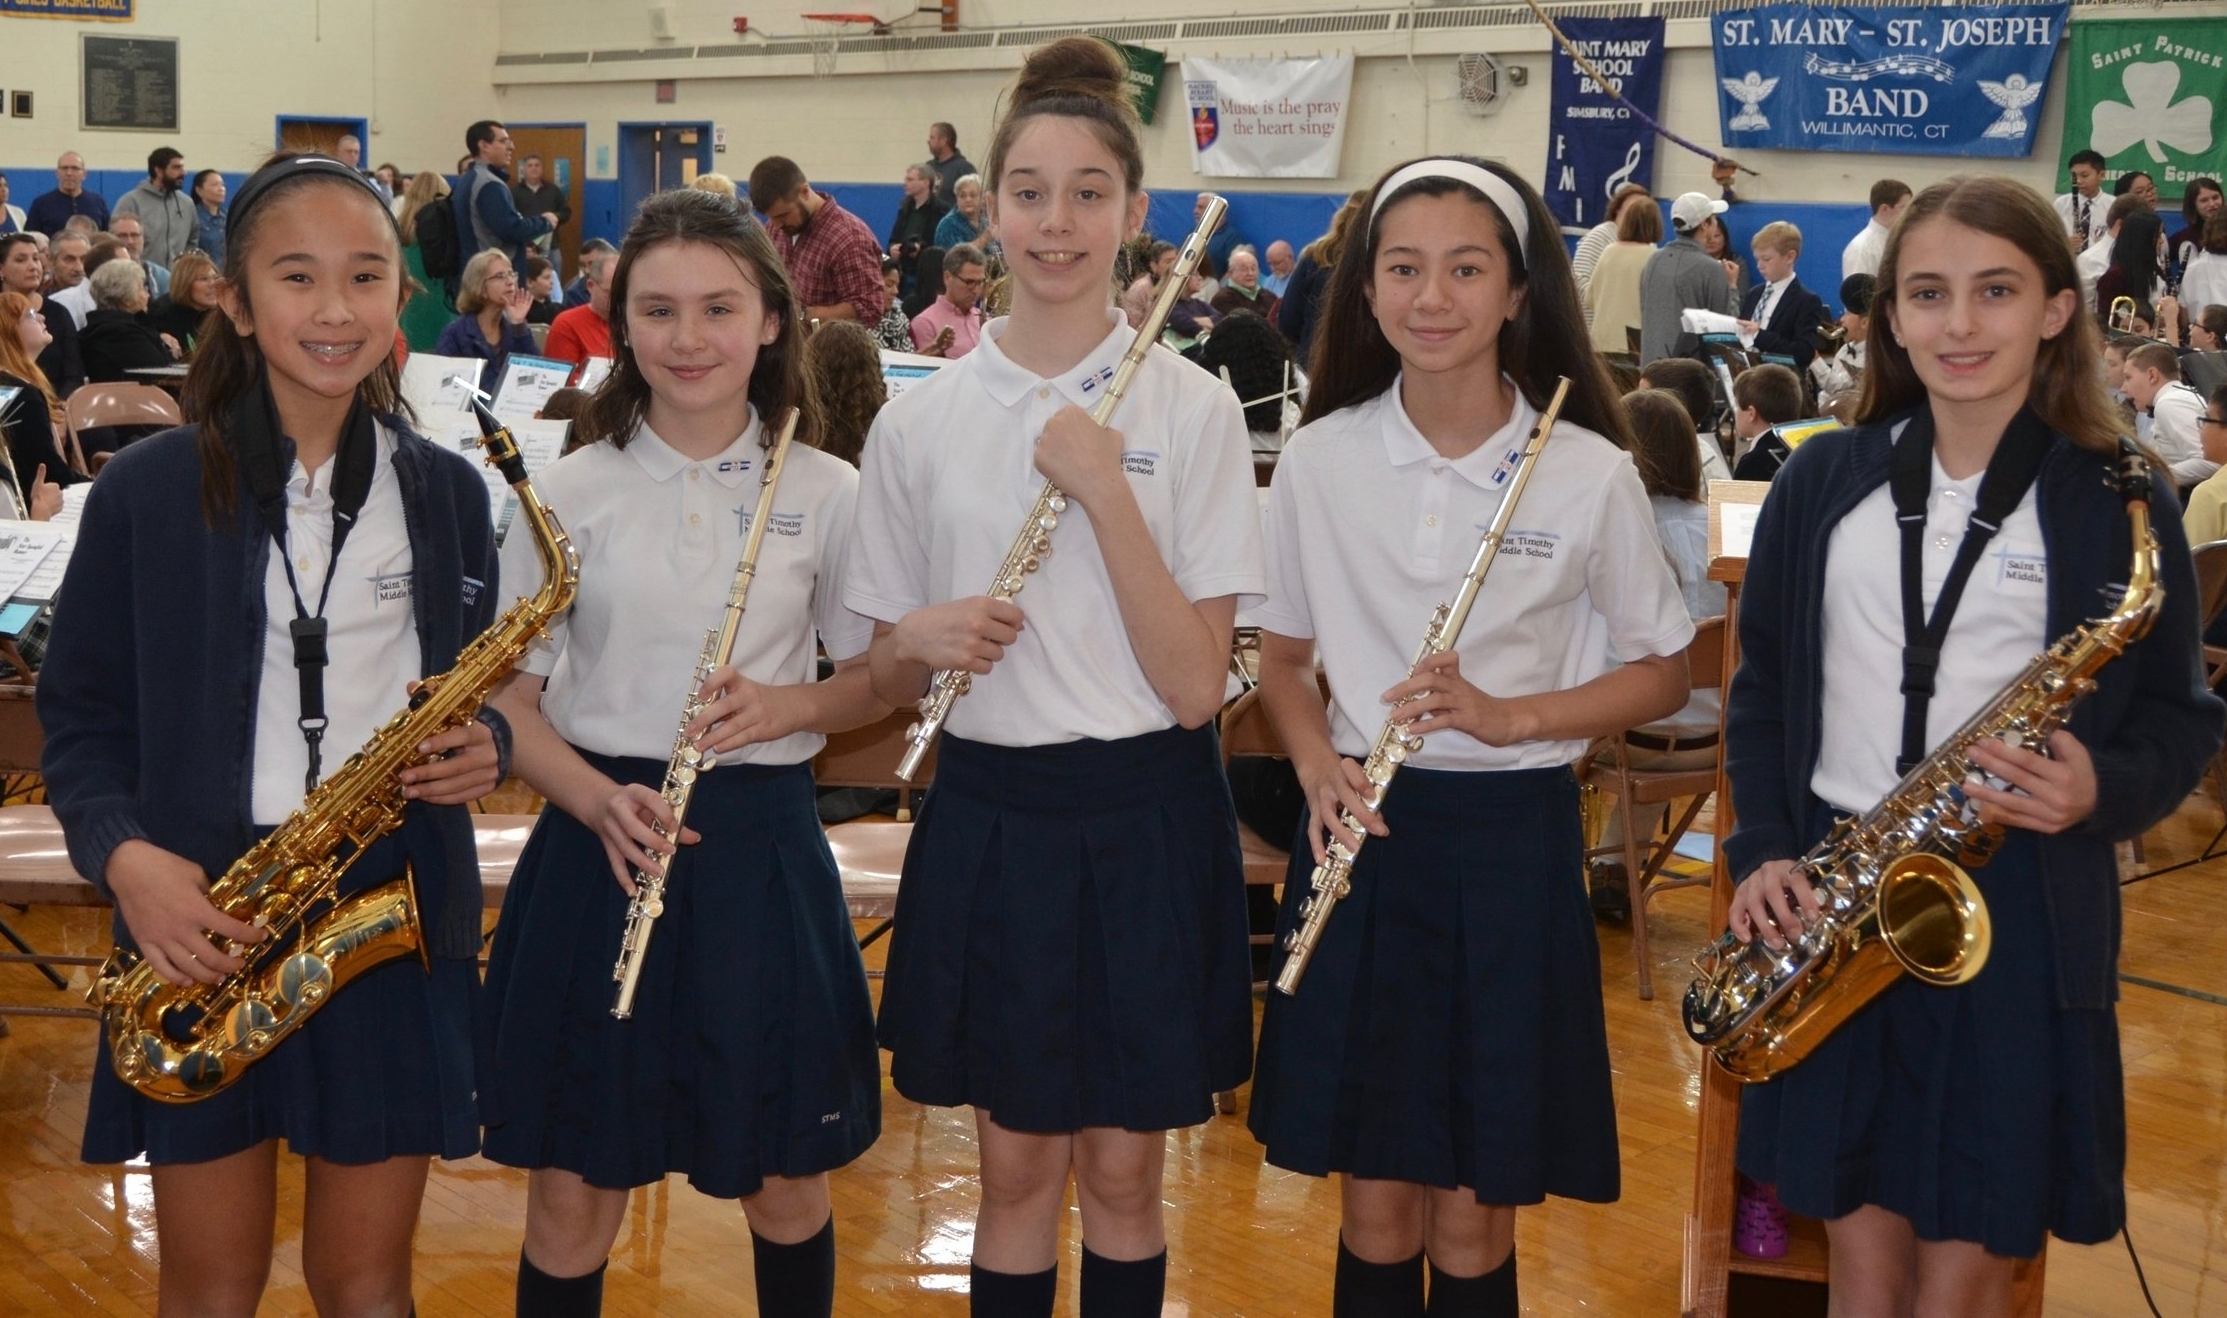 - 5 of our students performed in the Eastern Regional Band concert in October 2018. (Left to right): Lindsay Truong '20, Margaret Devlin '19, Michaela Martinez '19, Sophie Chen '21, Ava Rotundo '20.